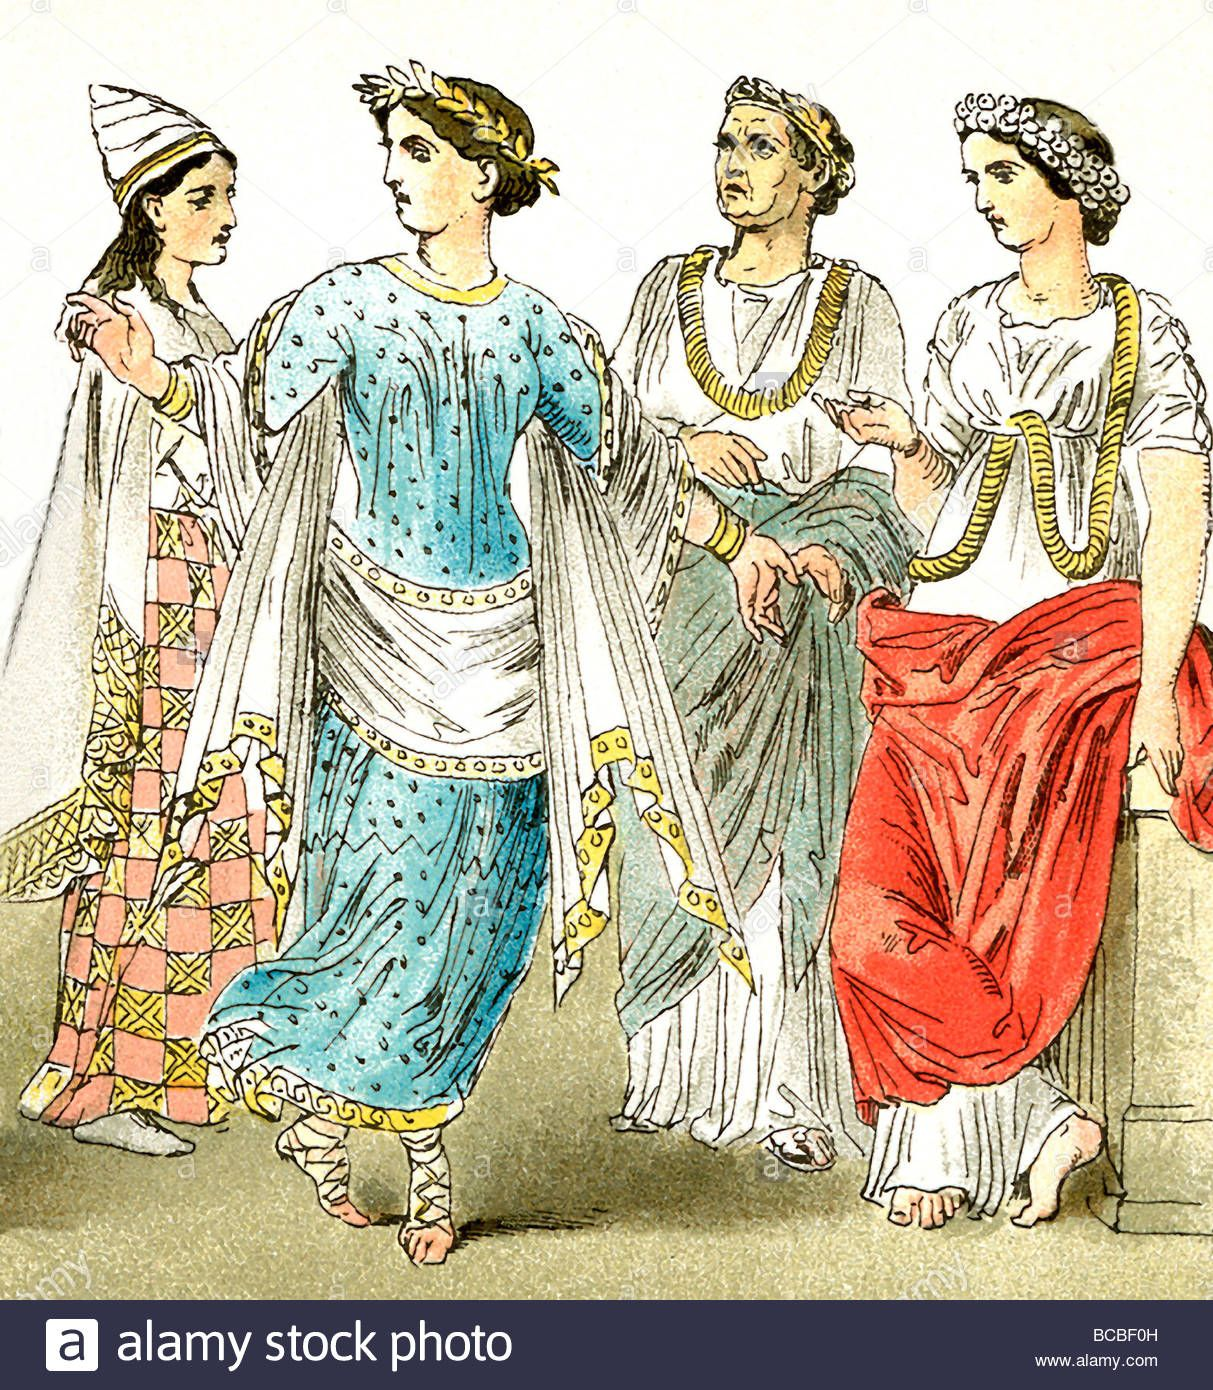 This An Etruscan Dress For Women It Had A Little More